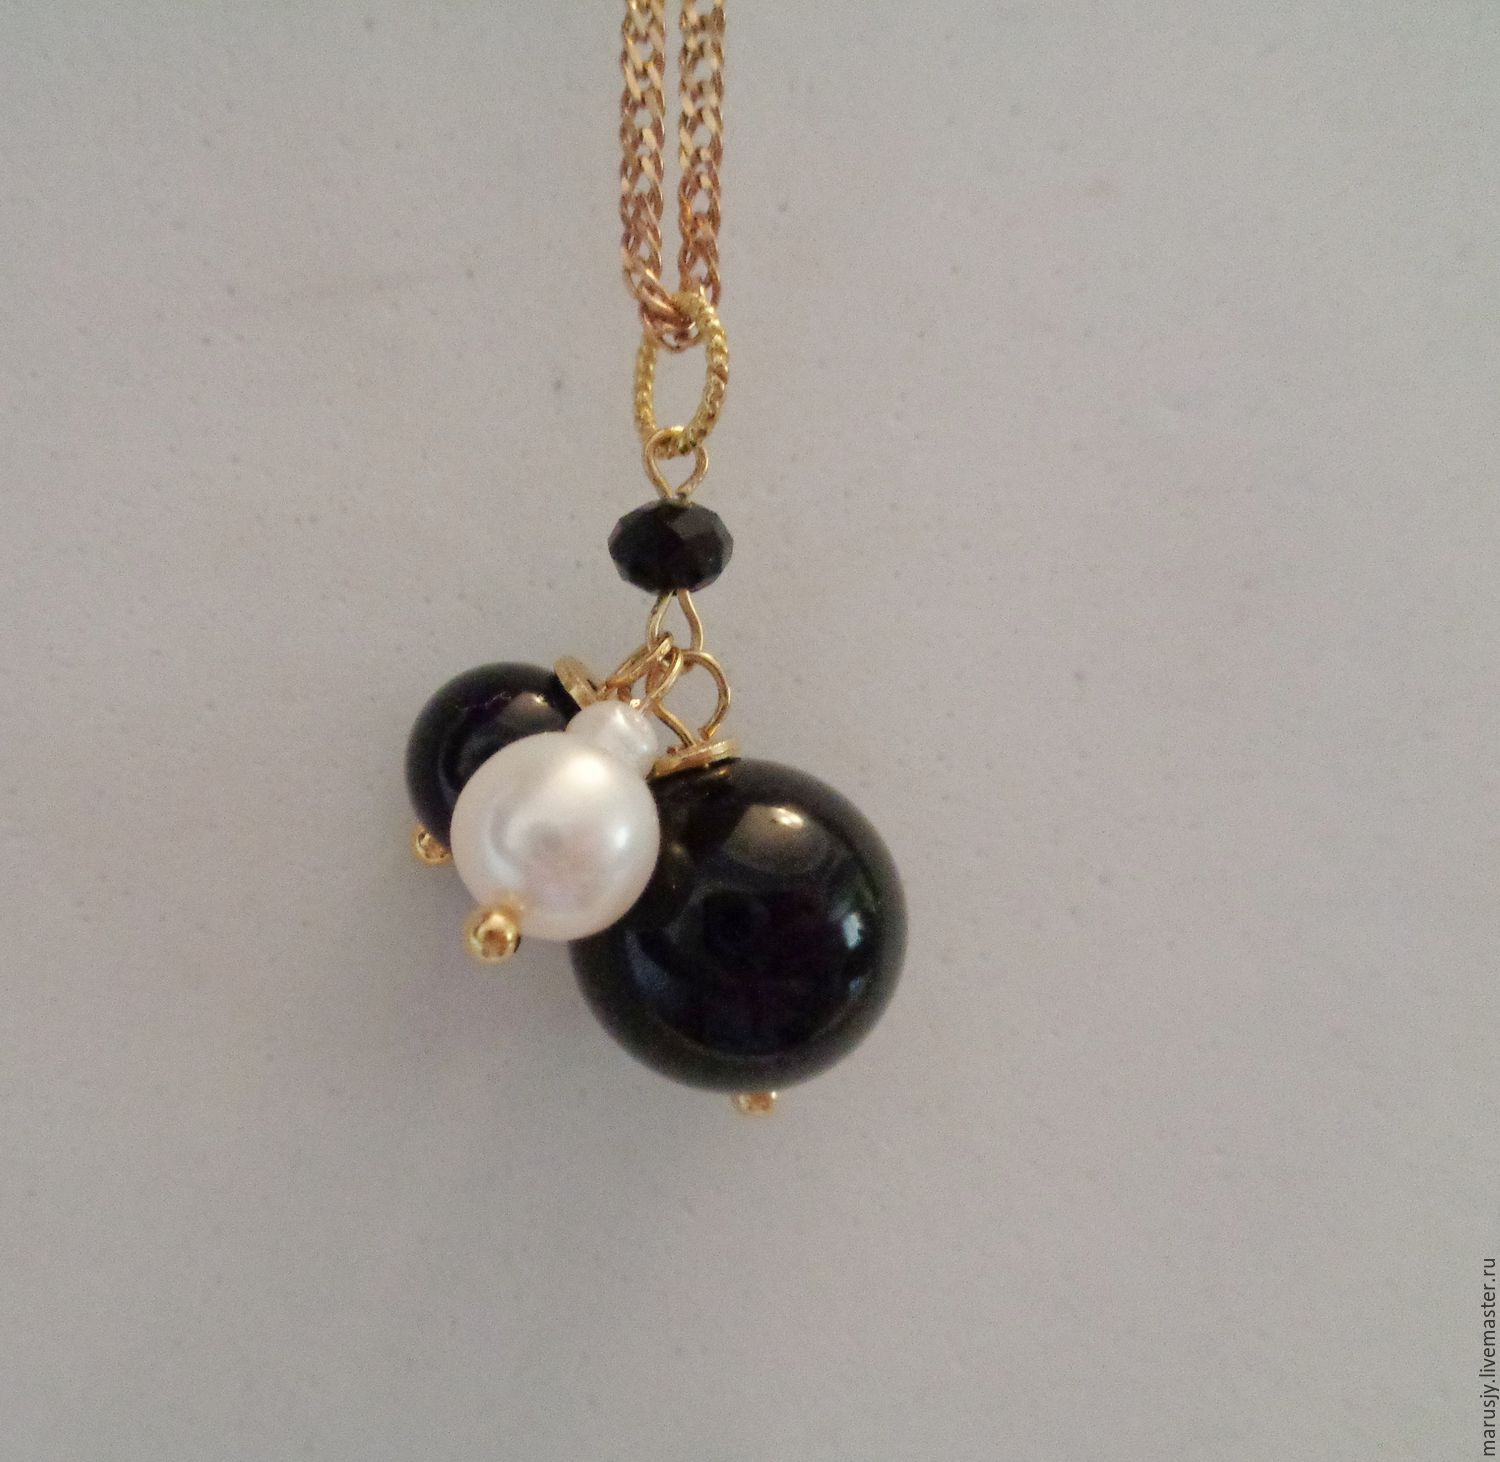 Pendant-pendant with onyx, obsidian, natural pearls and spinel, Pendants, Sergiev Posad,  Фото №1